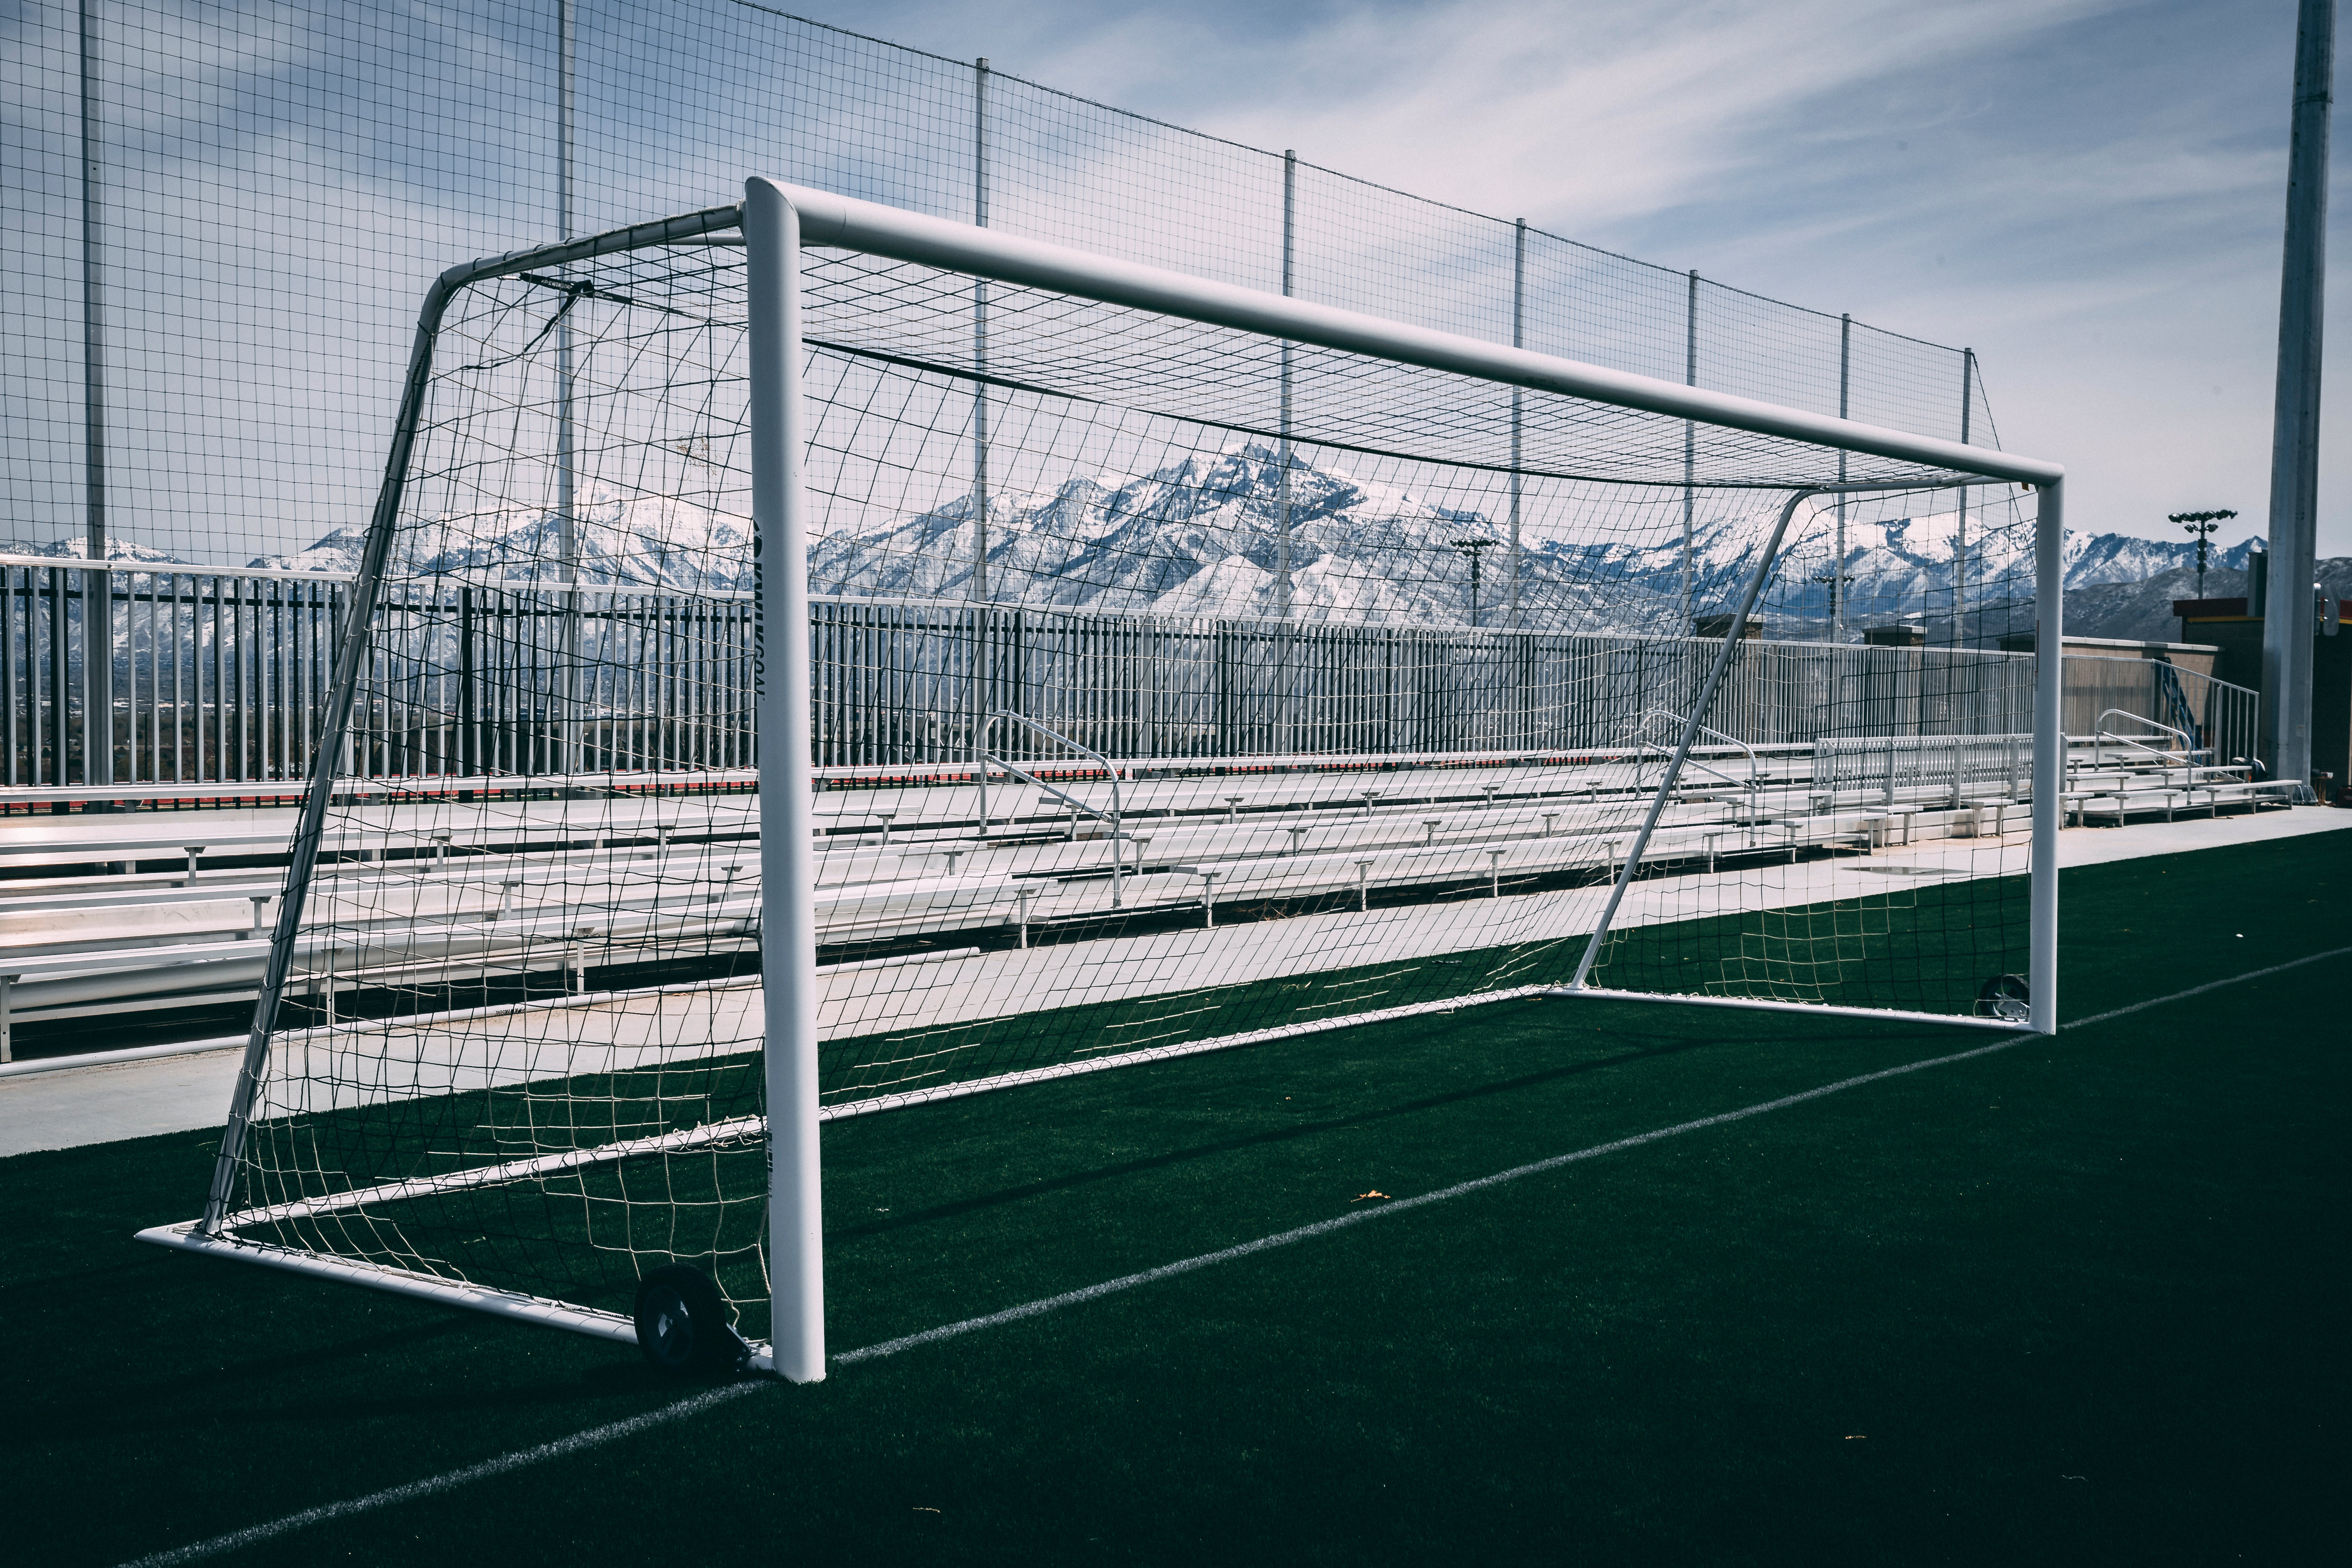 Zions Bank Stadium Provides Unique Soccer Experience |  Real Salt Lake